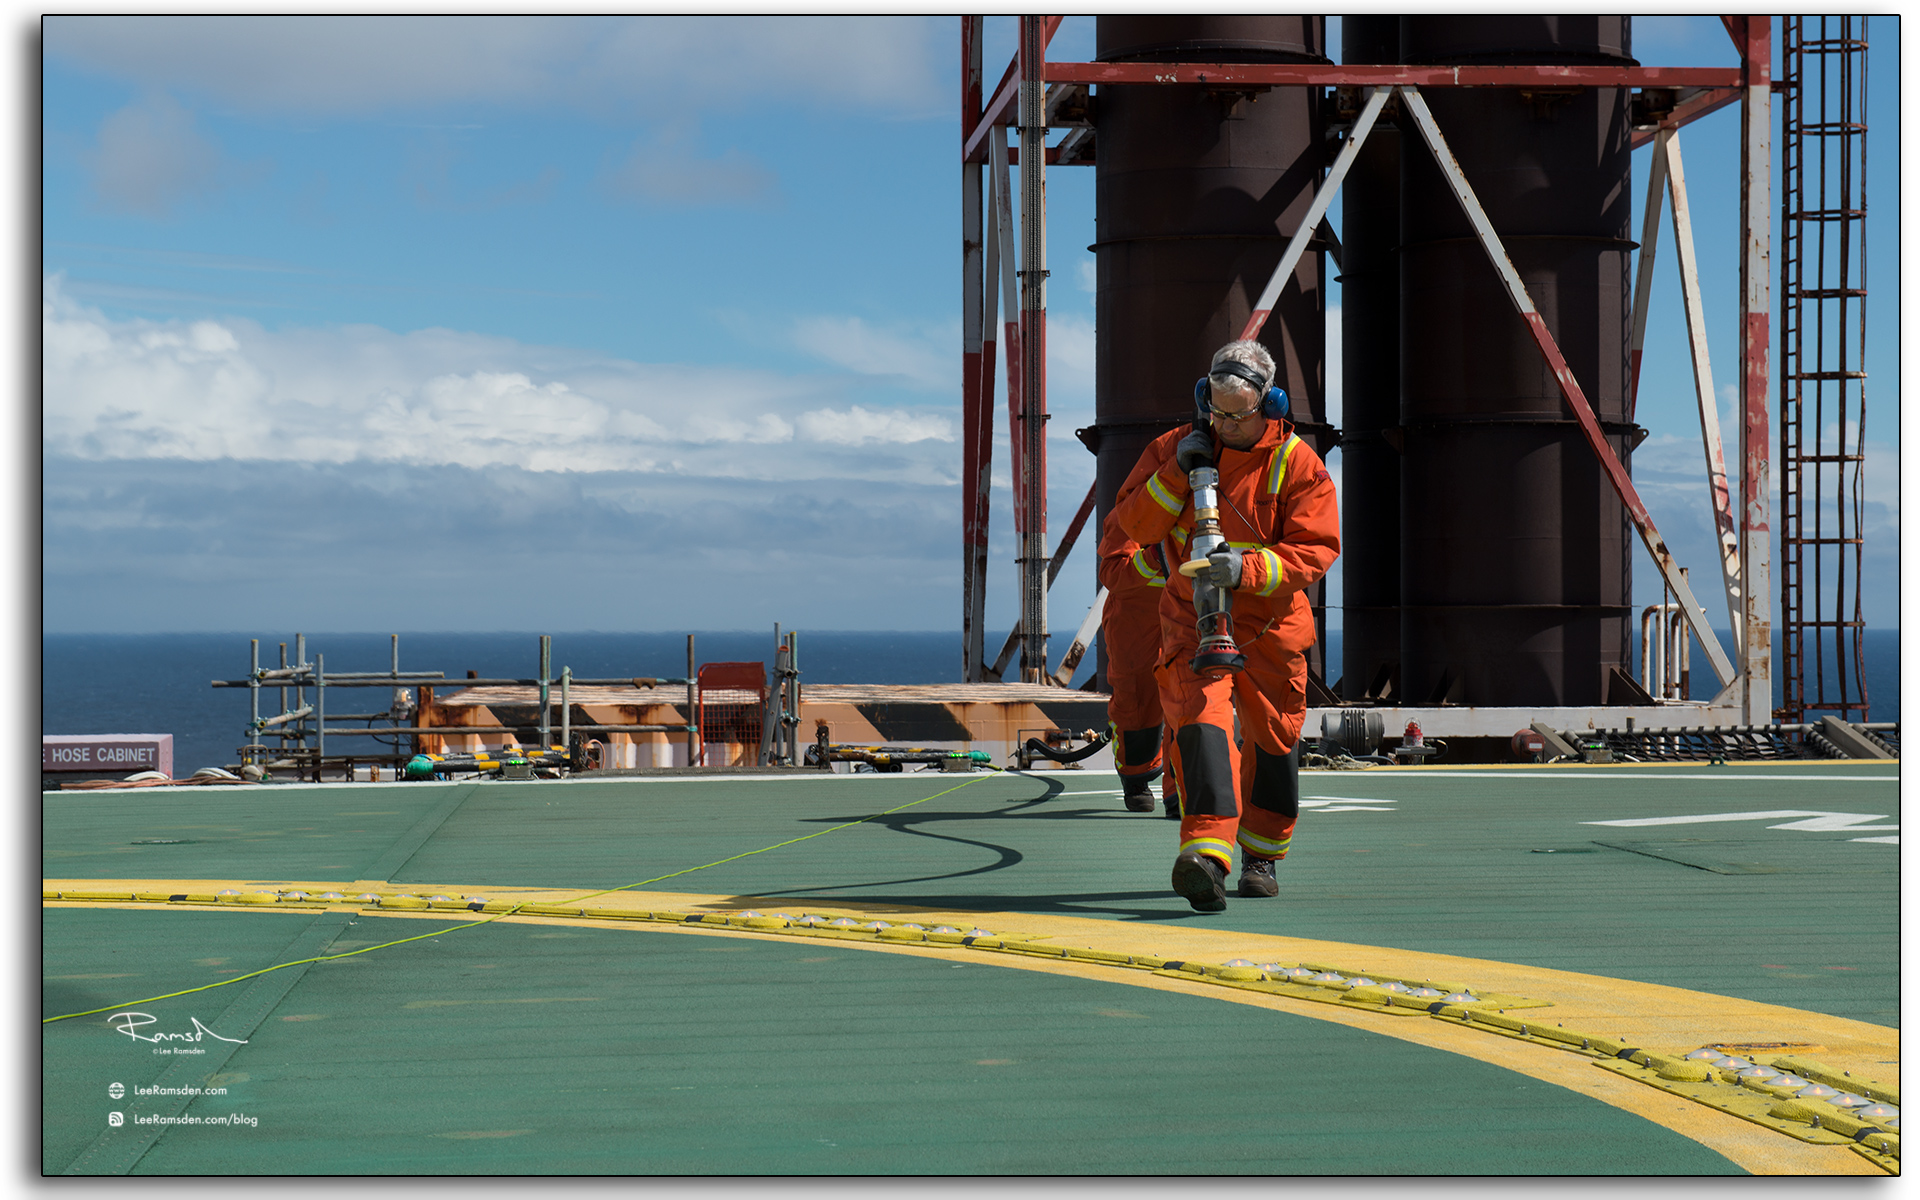 Helicopter refuelling operations, North Sea oil and gas industry.